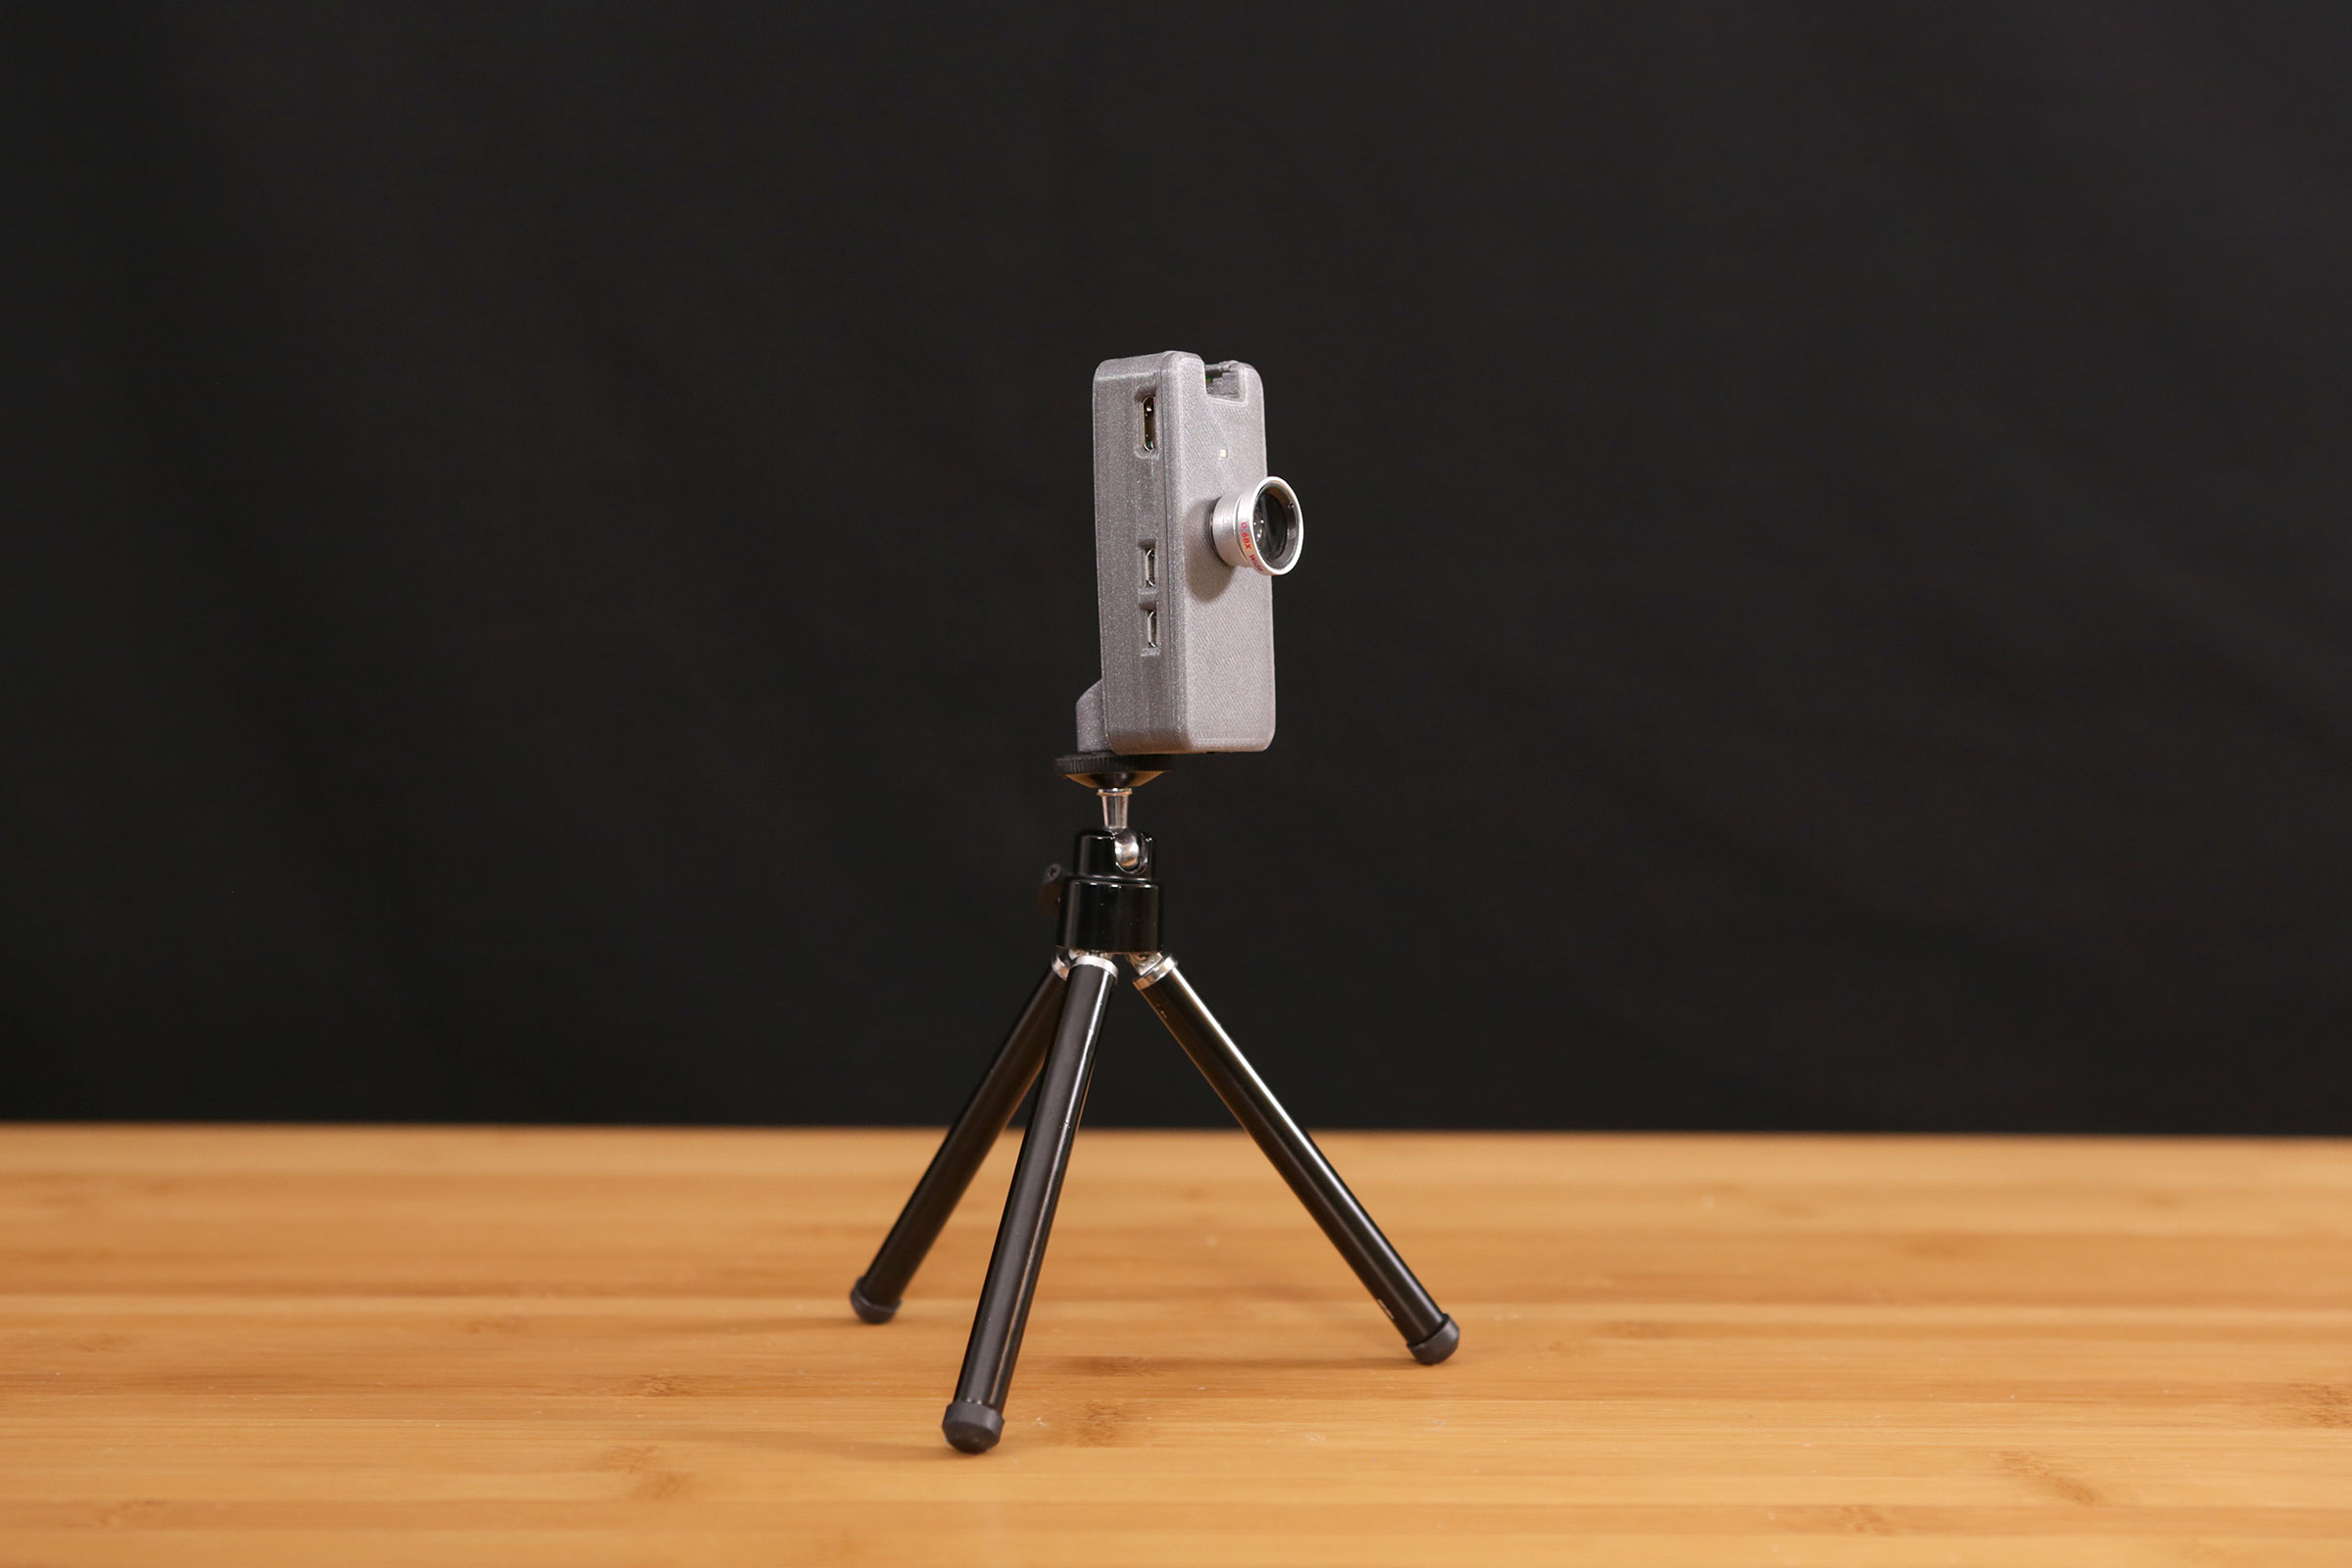 Build your own 3d printed camera